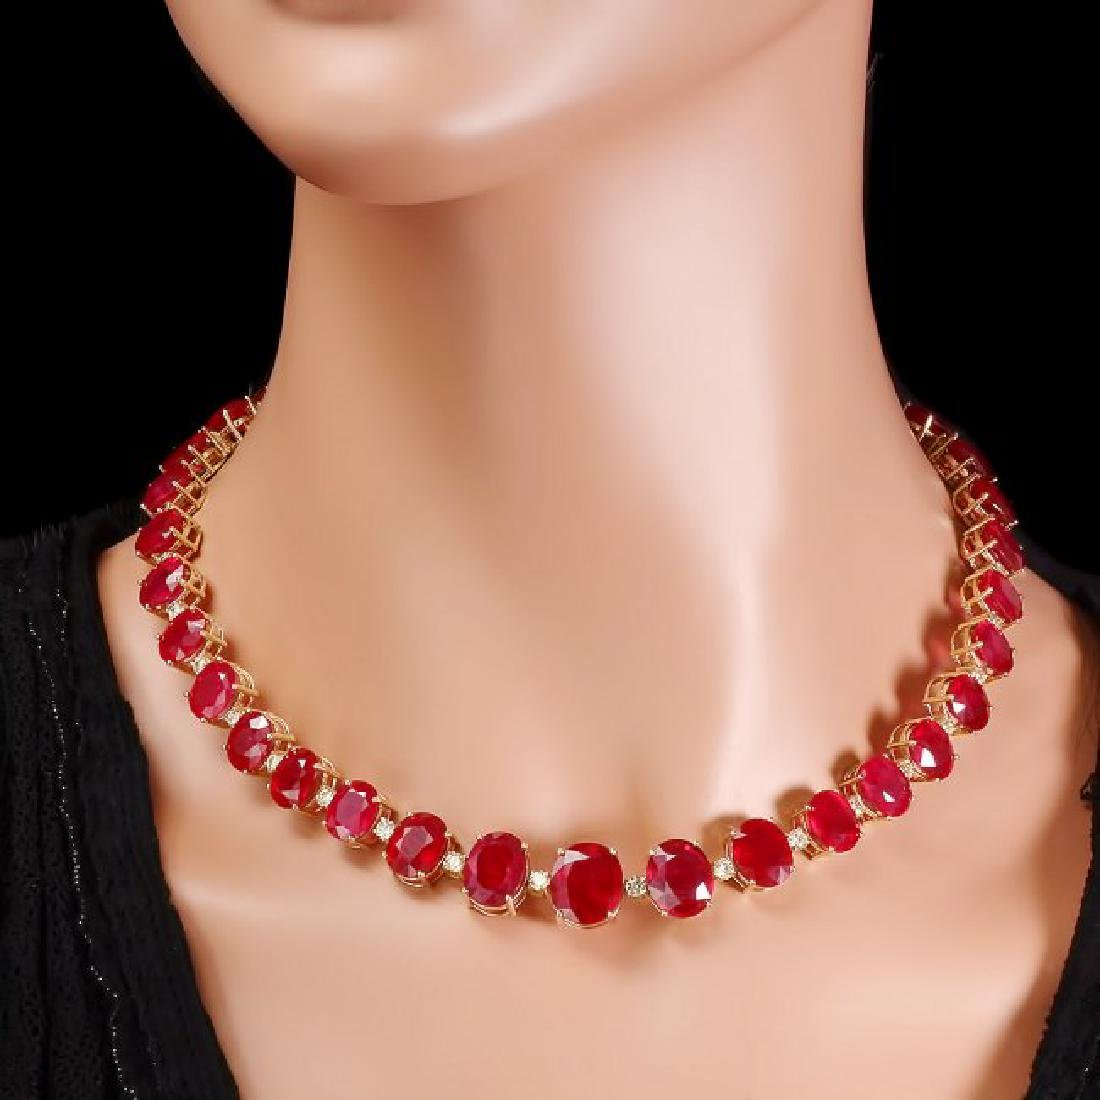 14k Gold 137ct Ruby 4.15ct Diamond Necklace - 6